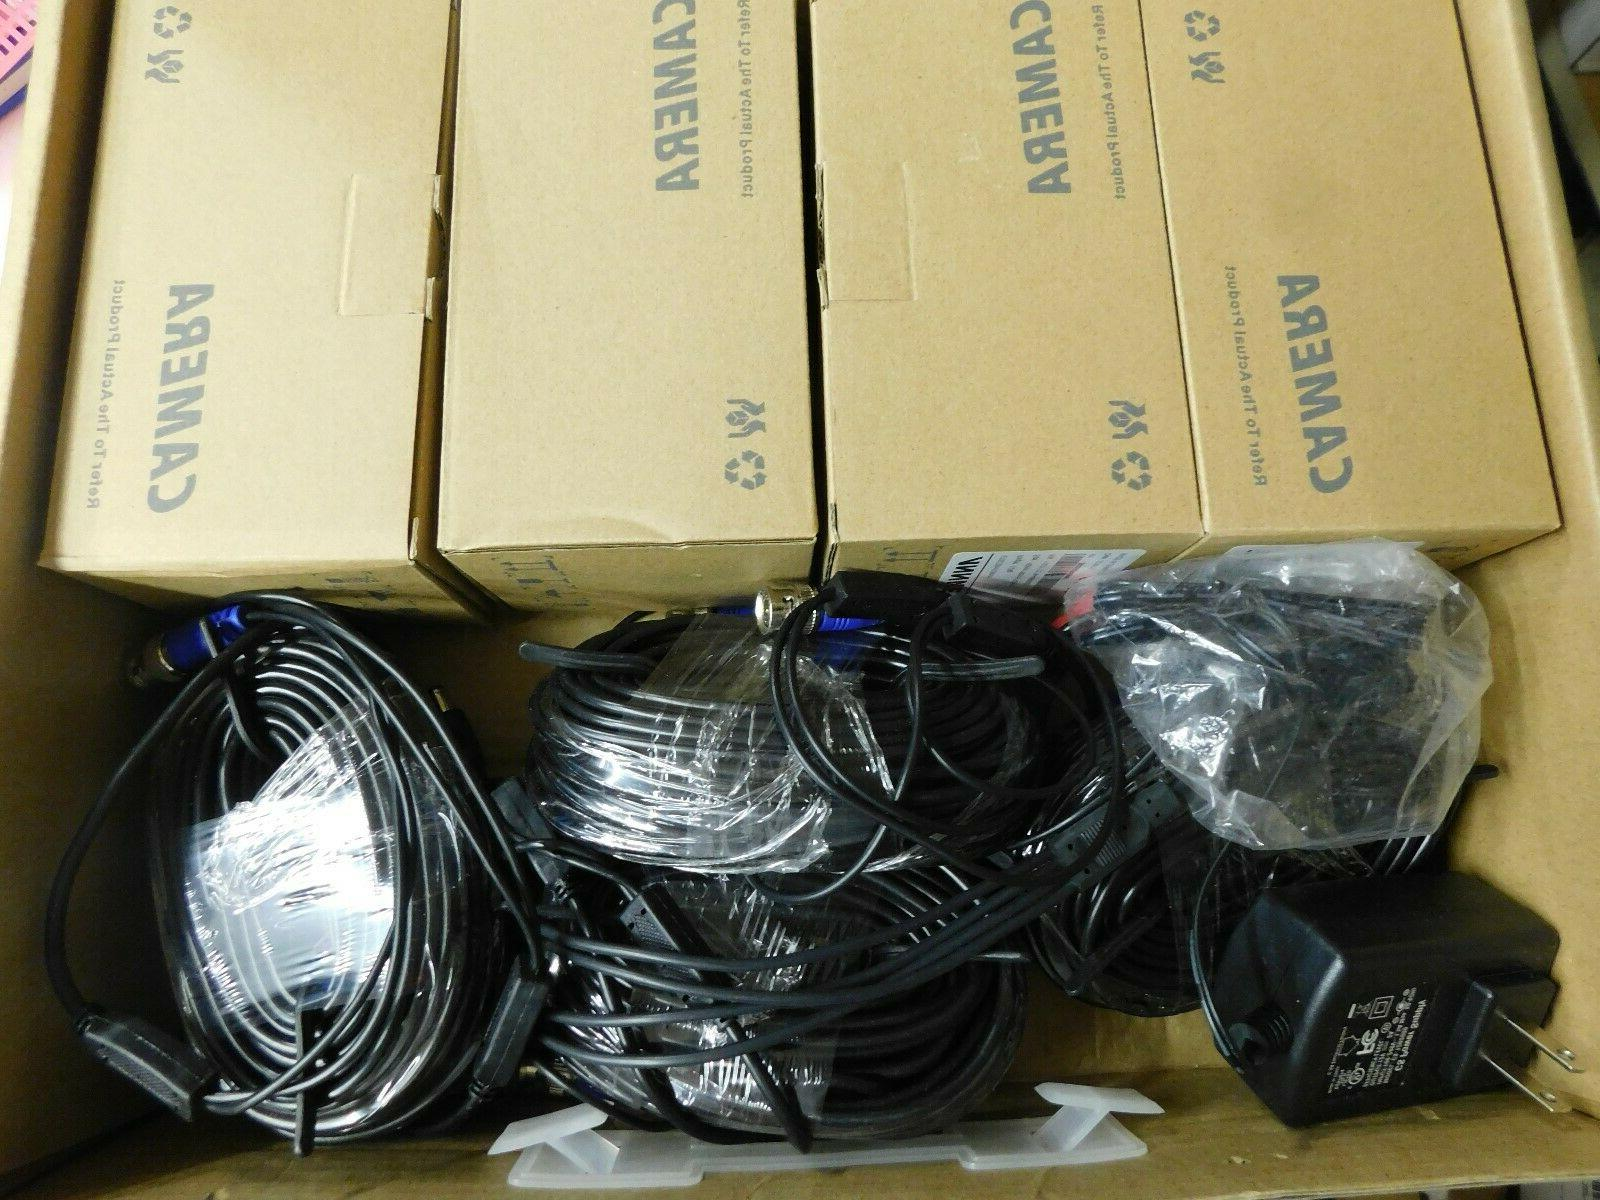 4 model c11dn security cameras with wire